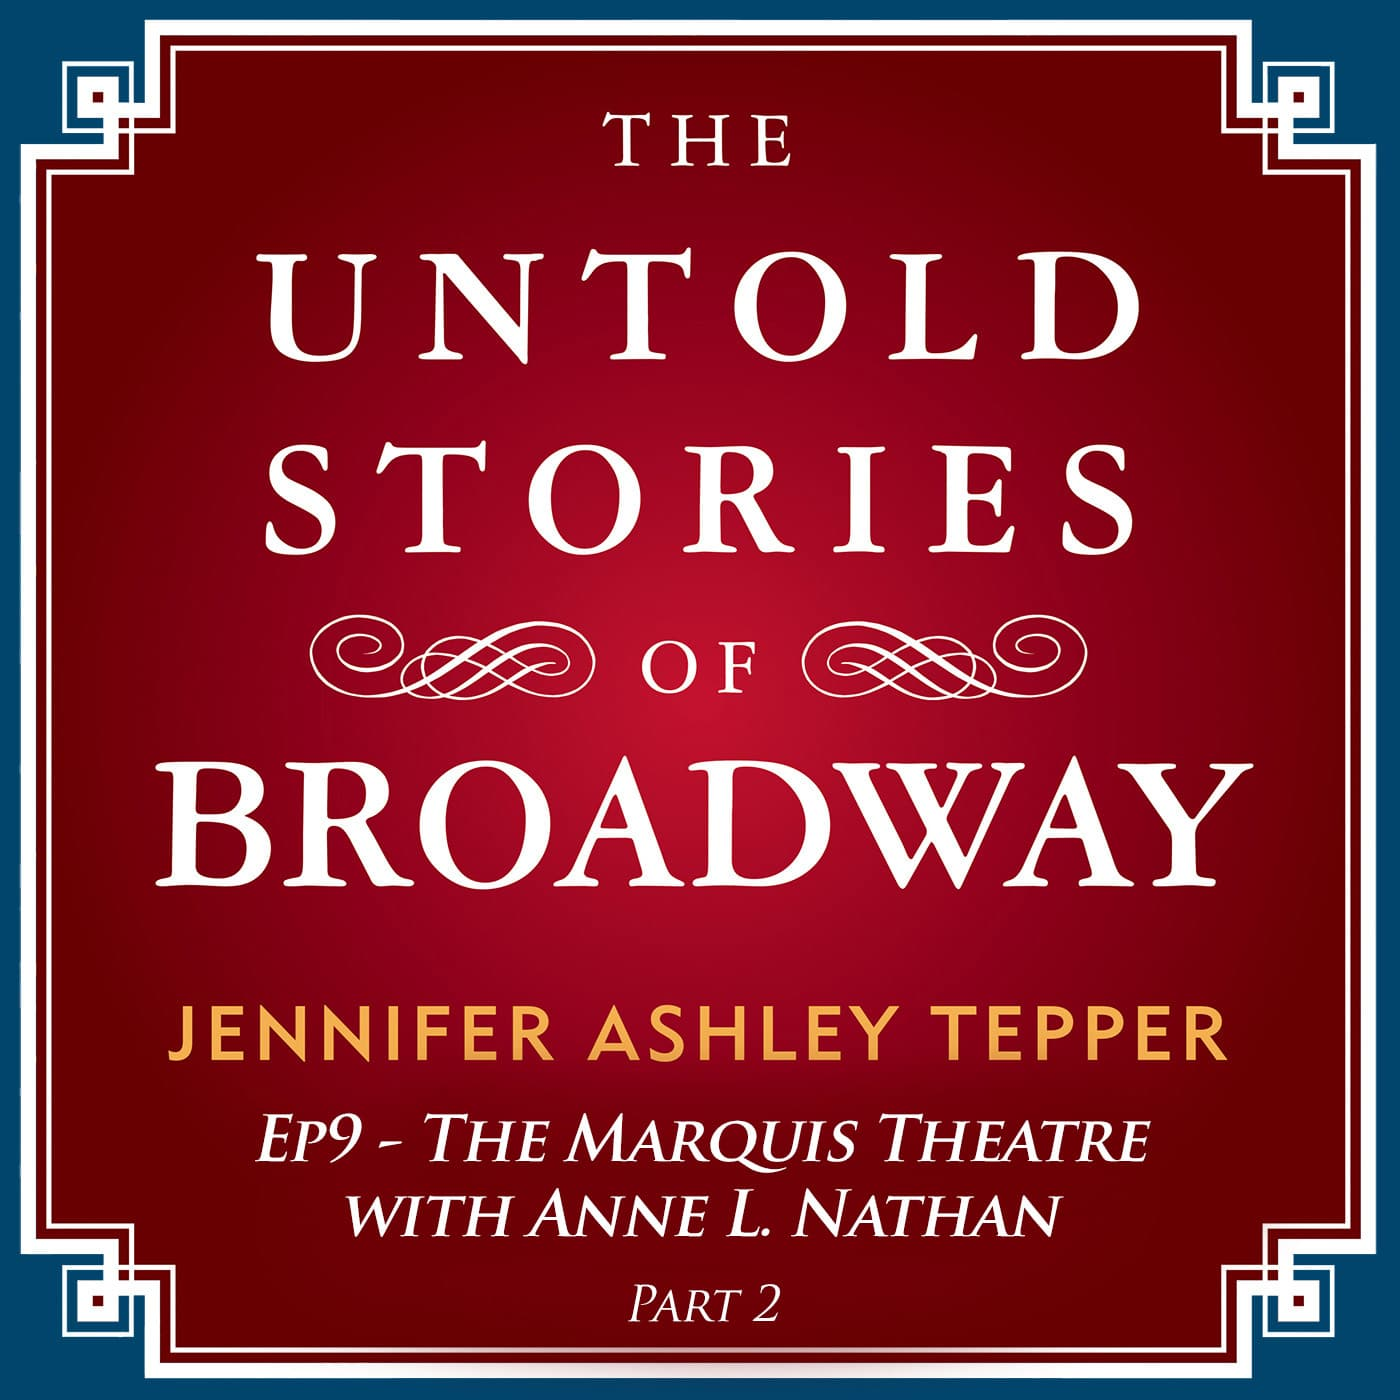 #9 - The Untold Stories of The Marquis with Anne L. Nathan Part 2